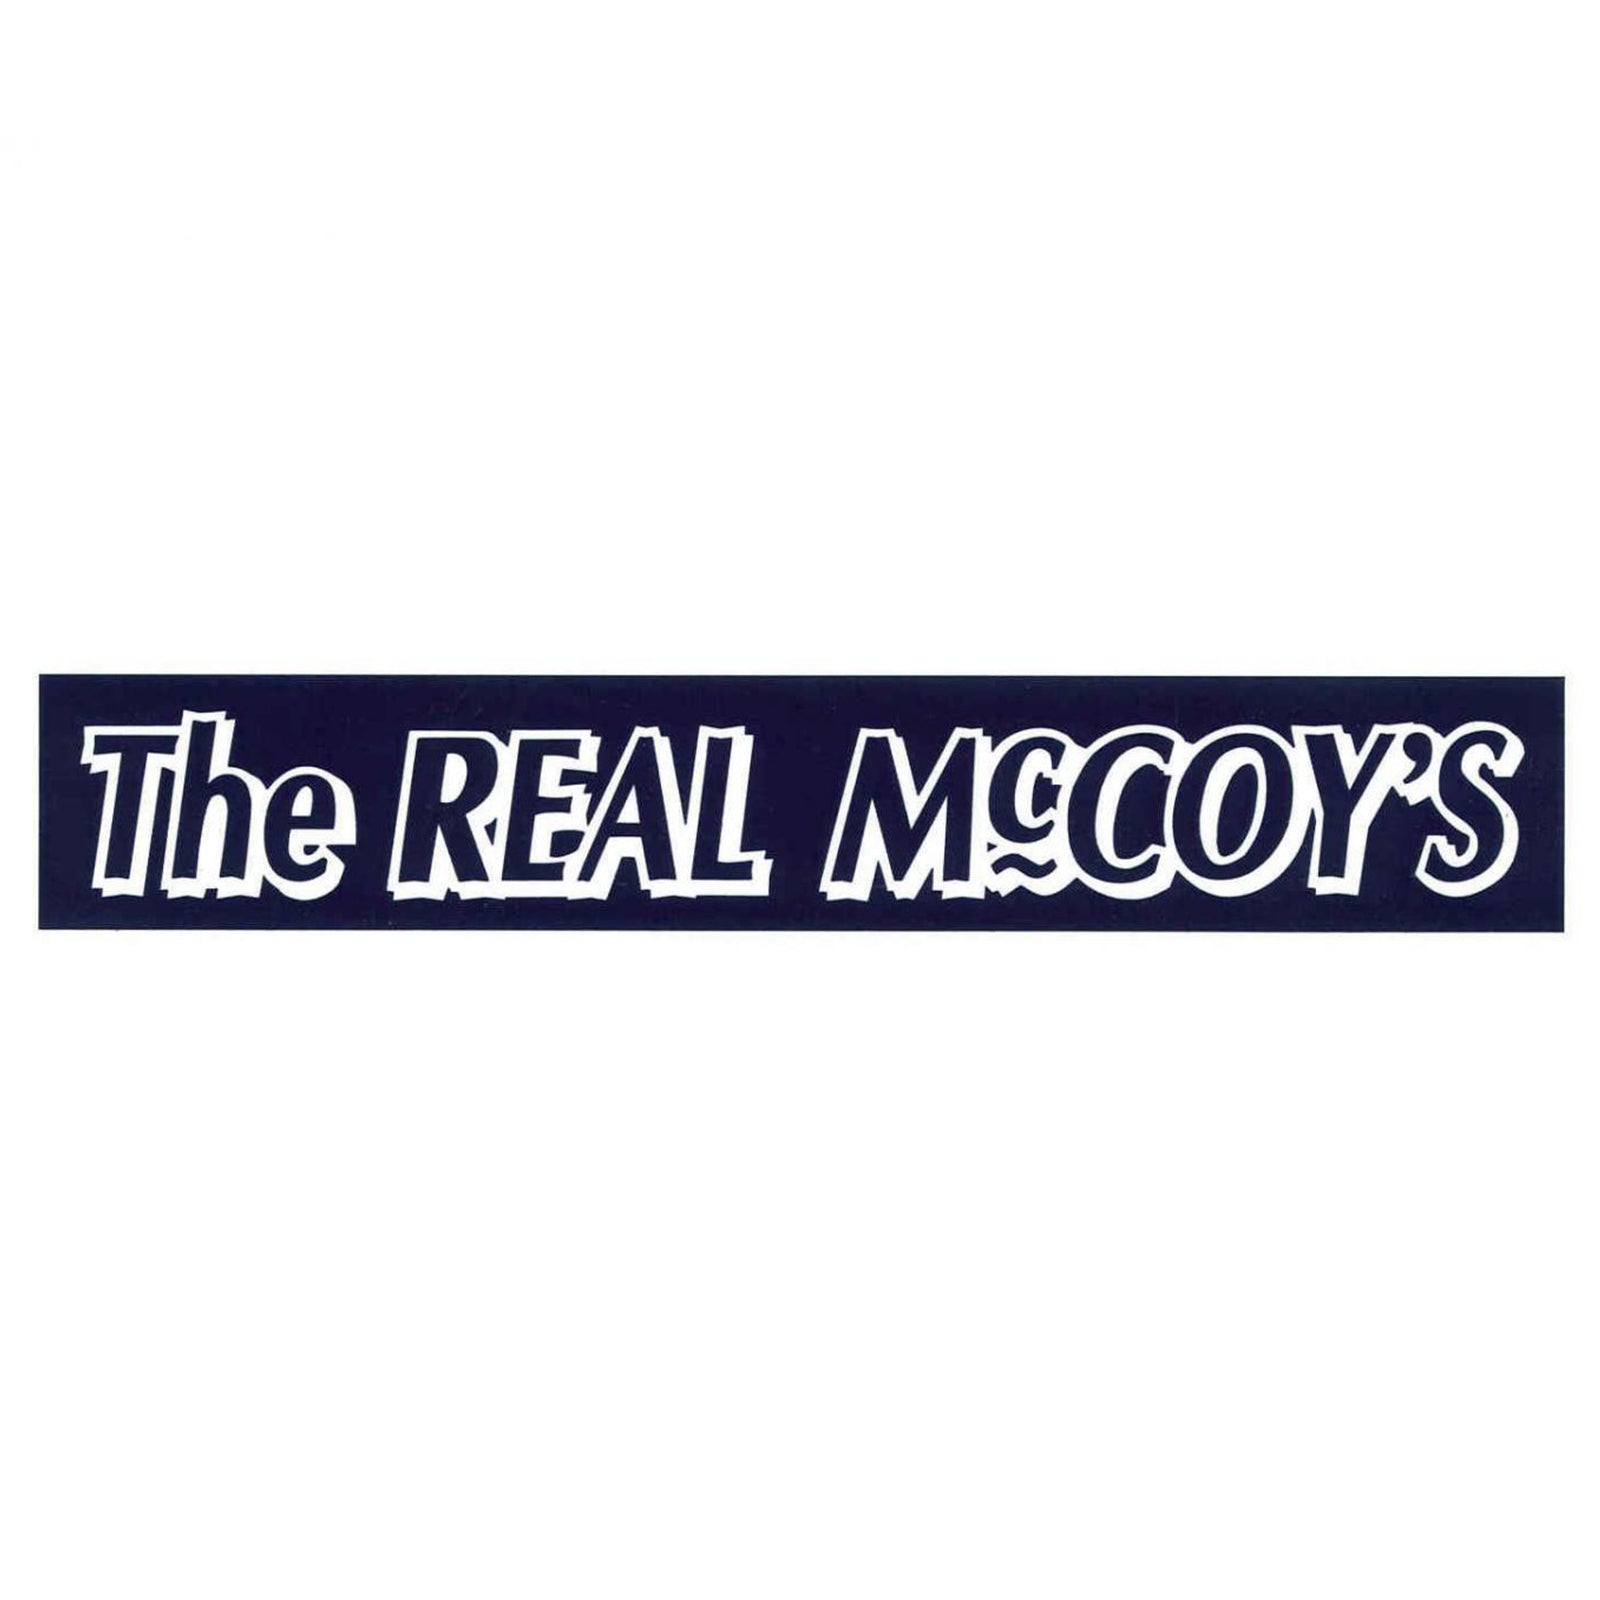 THE REAL McCOY'S LOGO STRIP STICKER